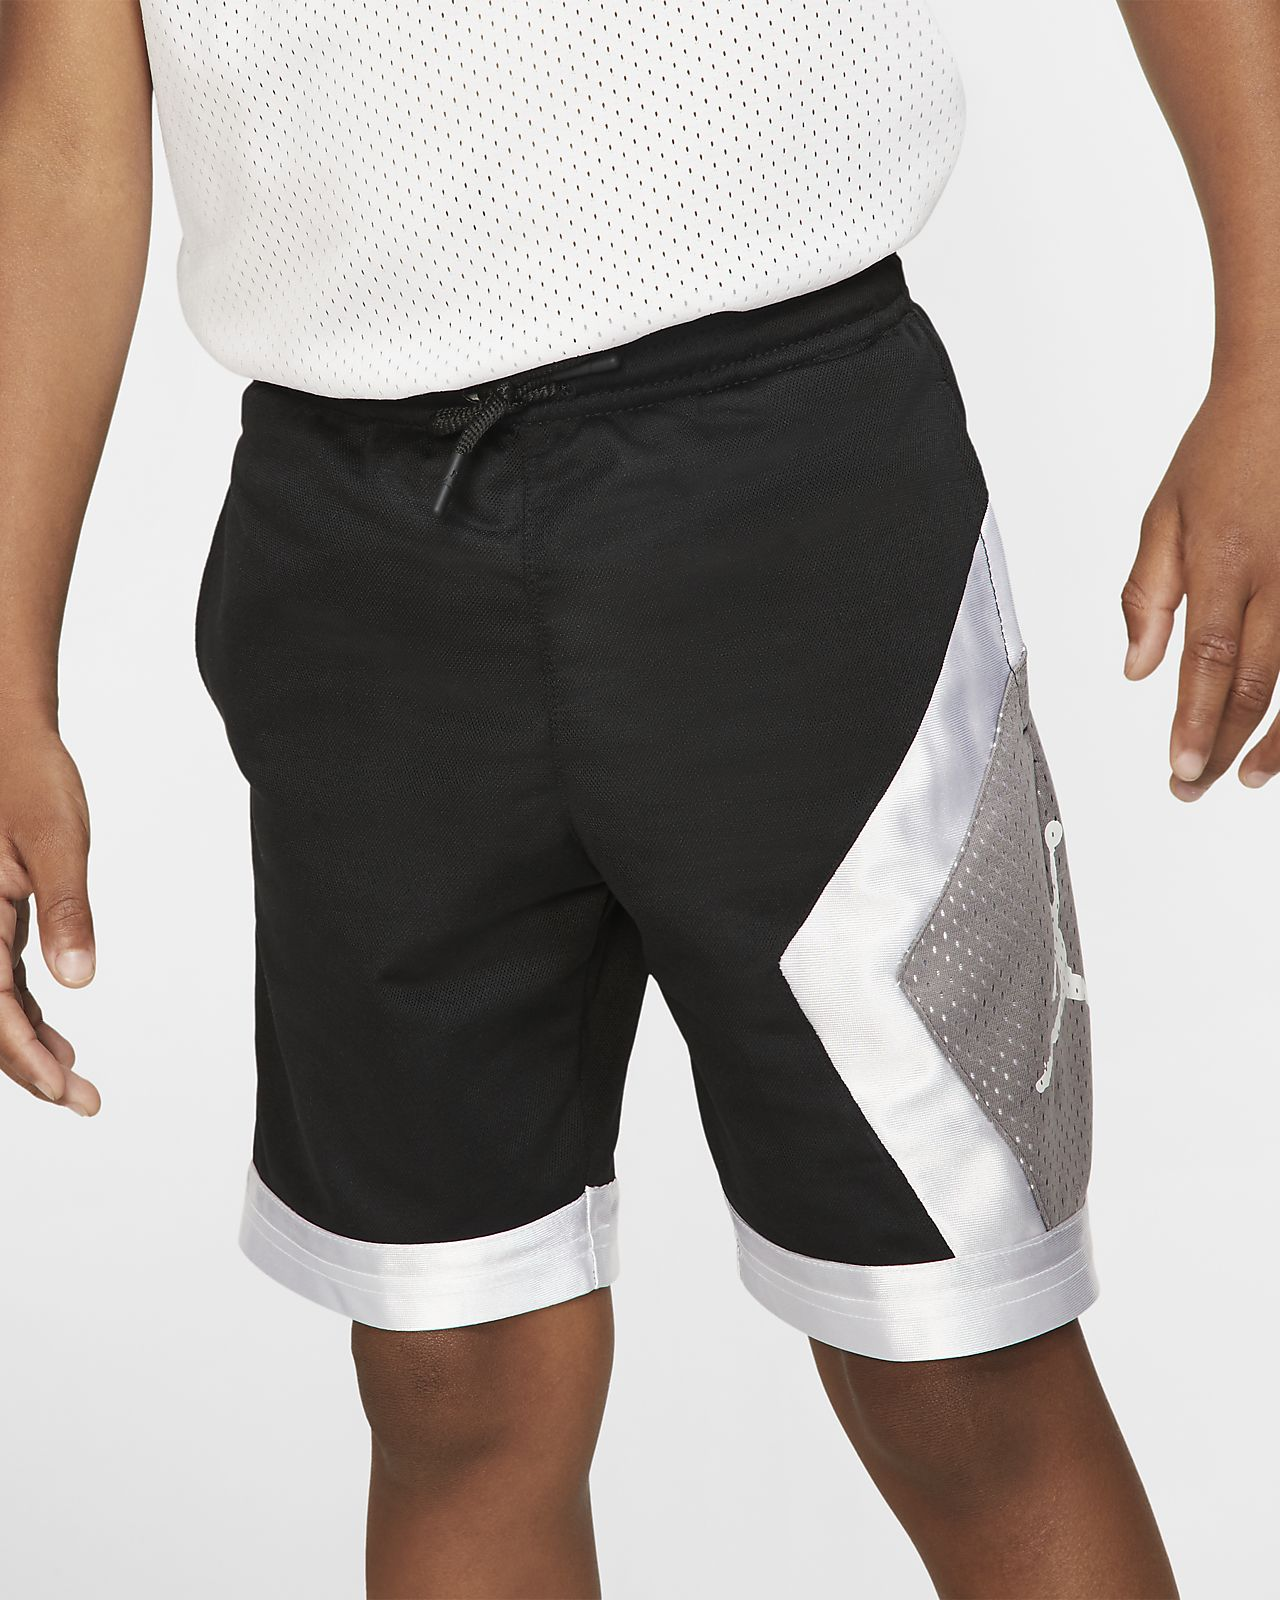 Jordan Dri-FIT Diamond-shorts til små børn